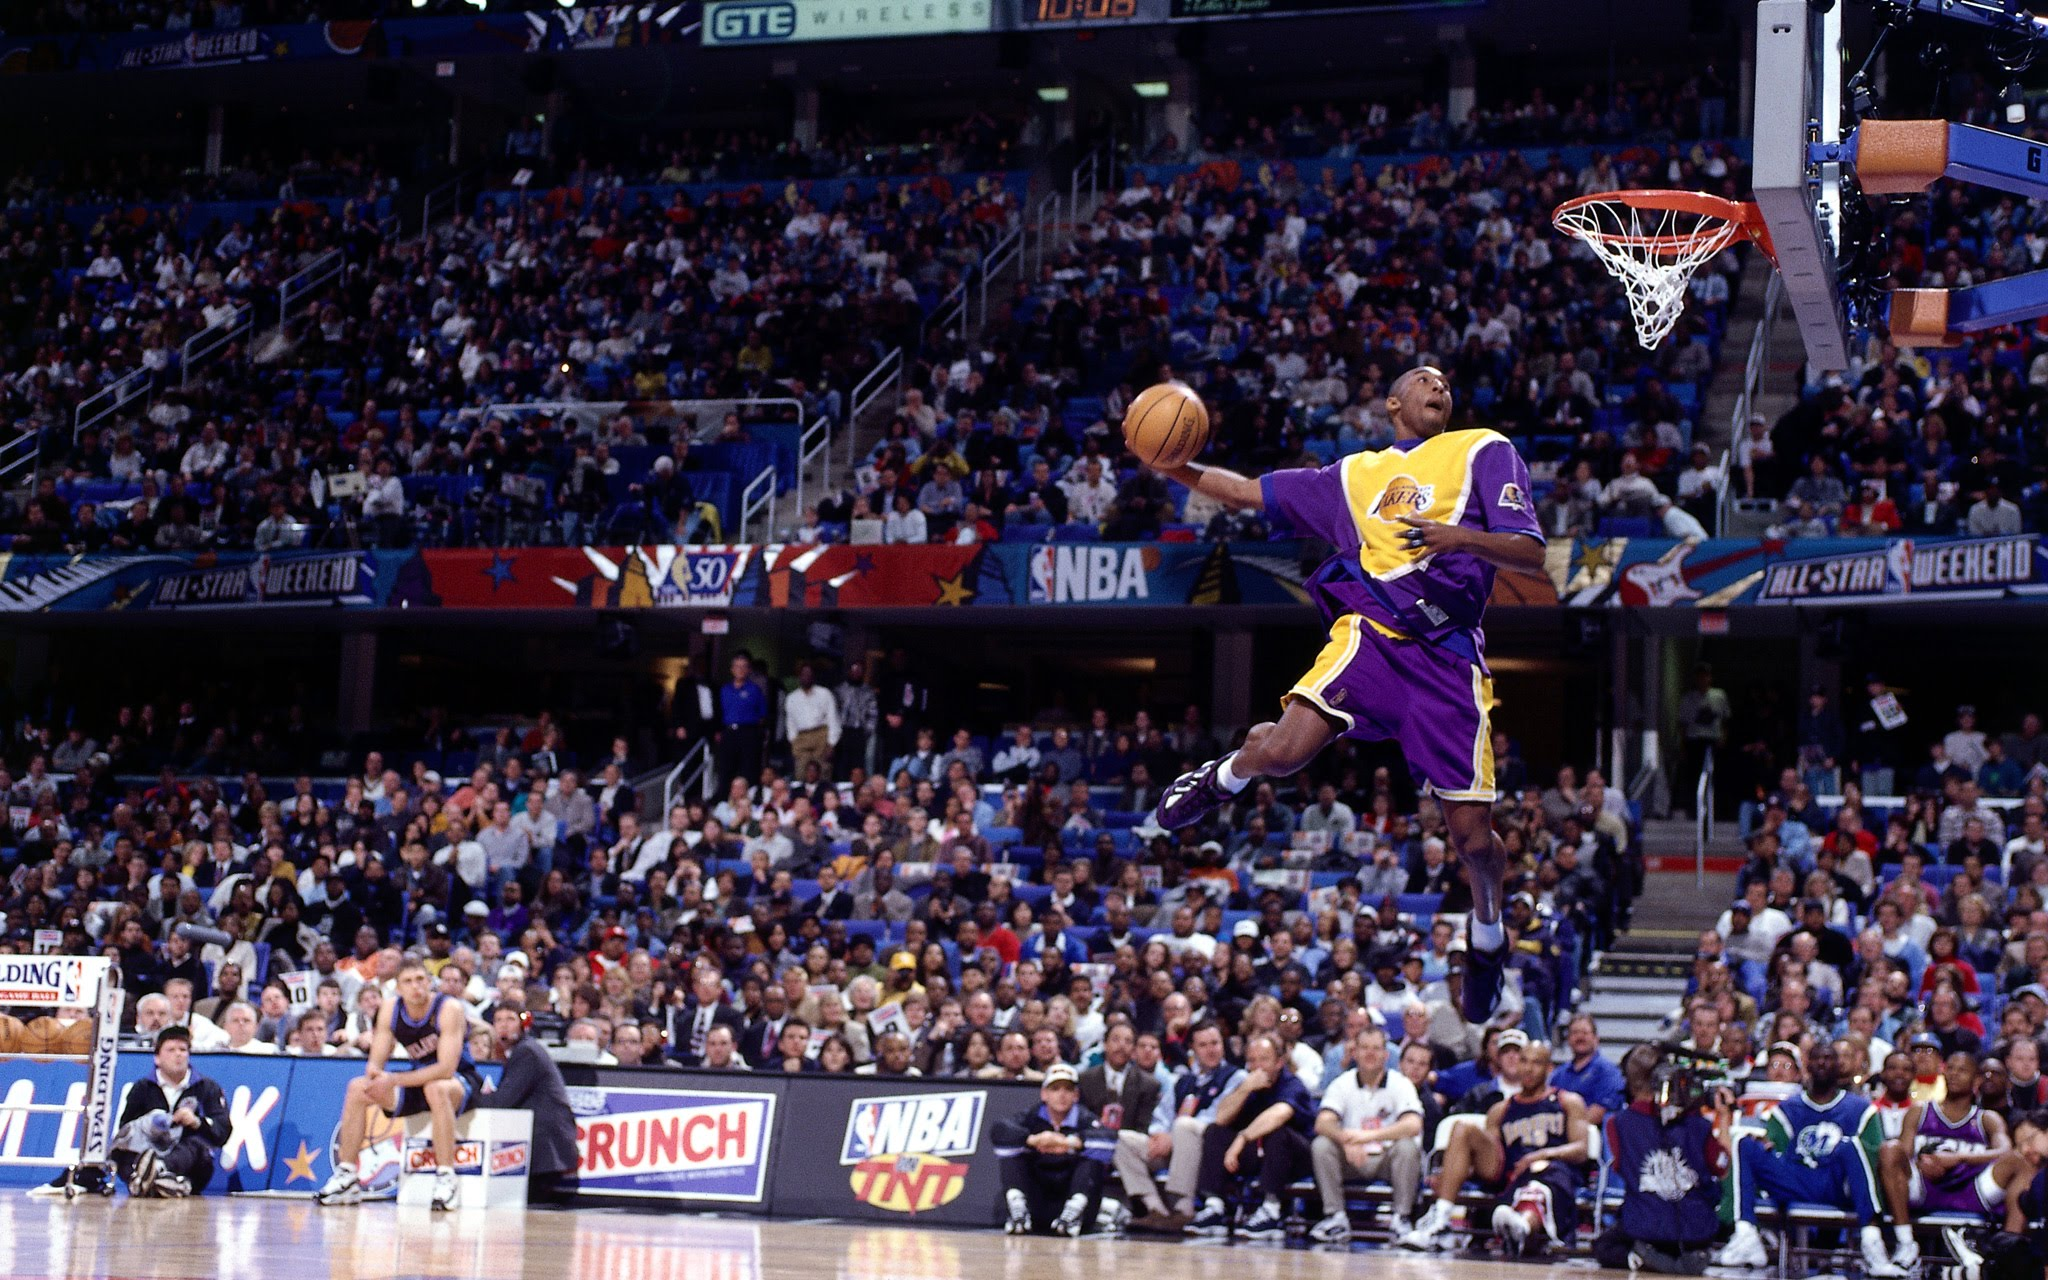 Slam dunk contest games online play